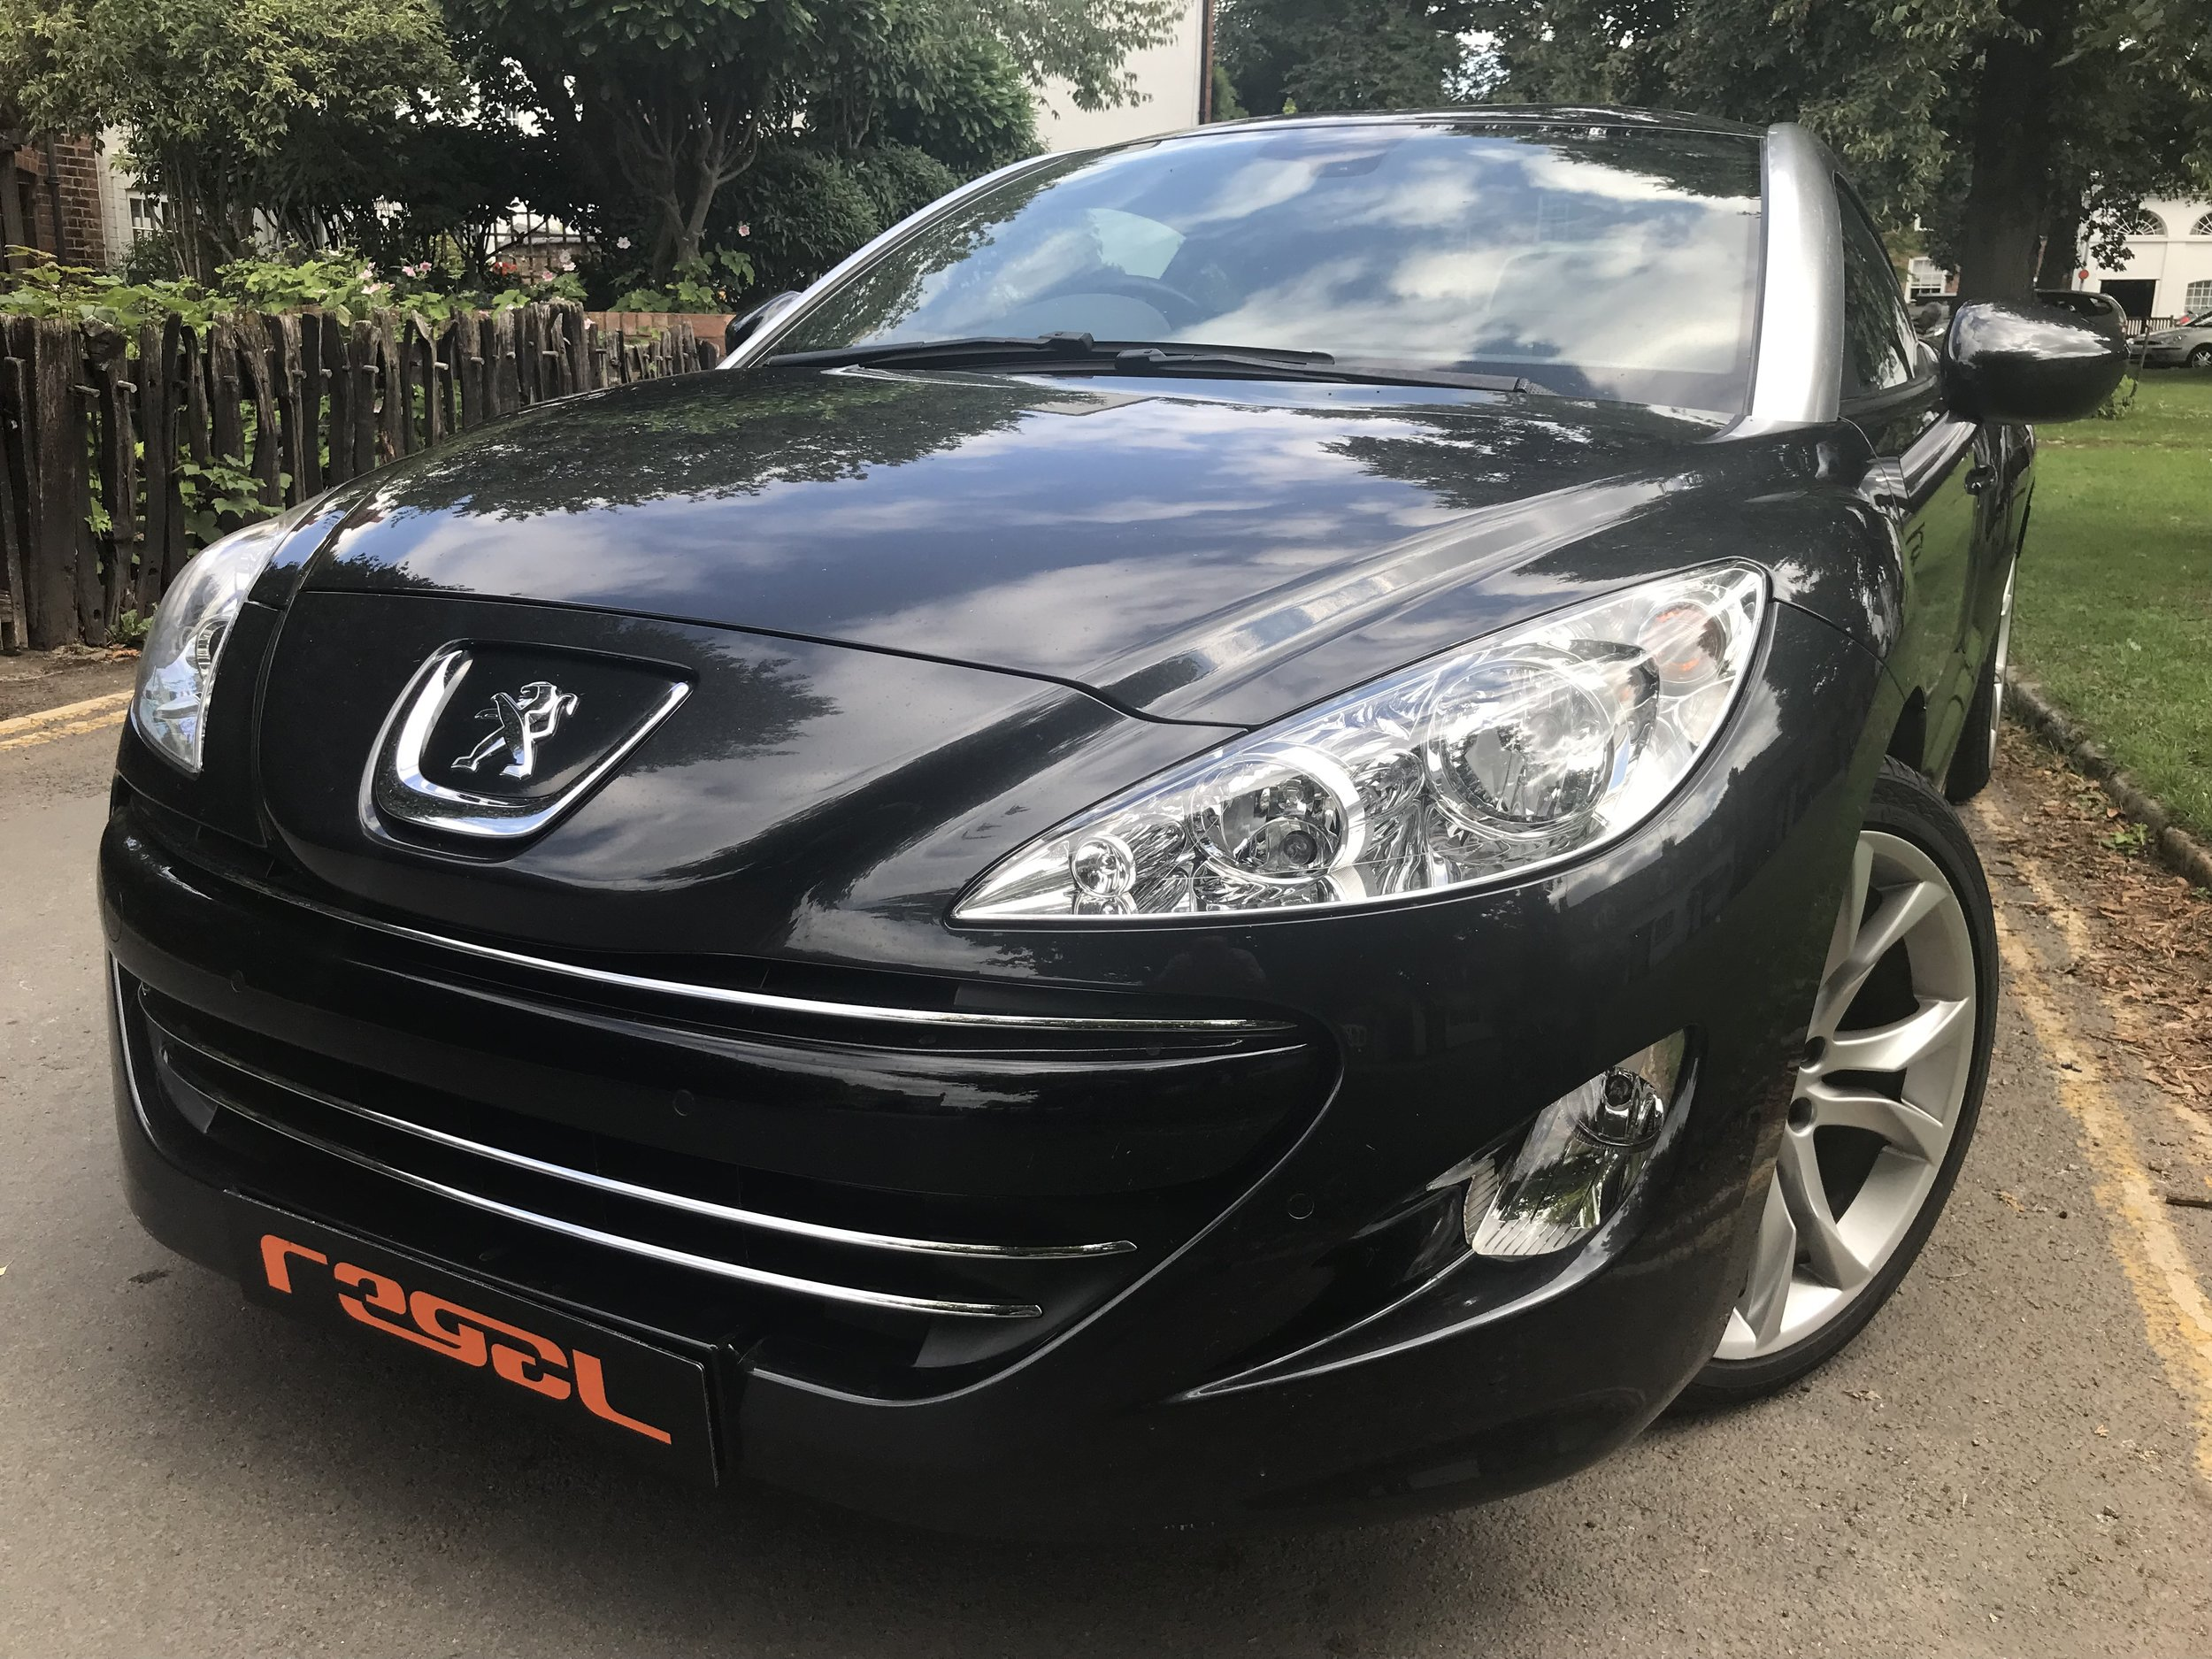 peugeot-rcz-gt-thp-used-car-forsale-regalmotion41.jpeg